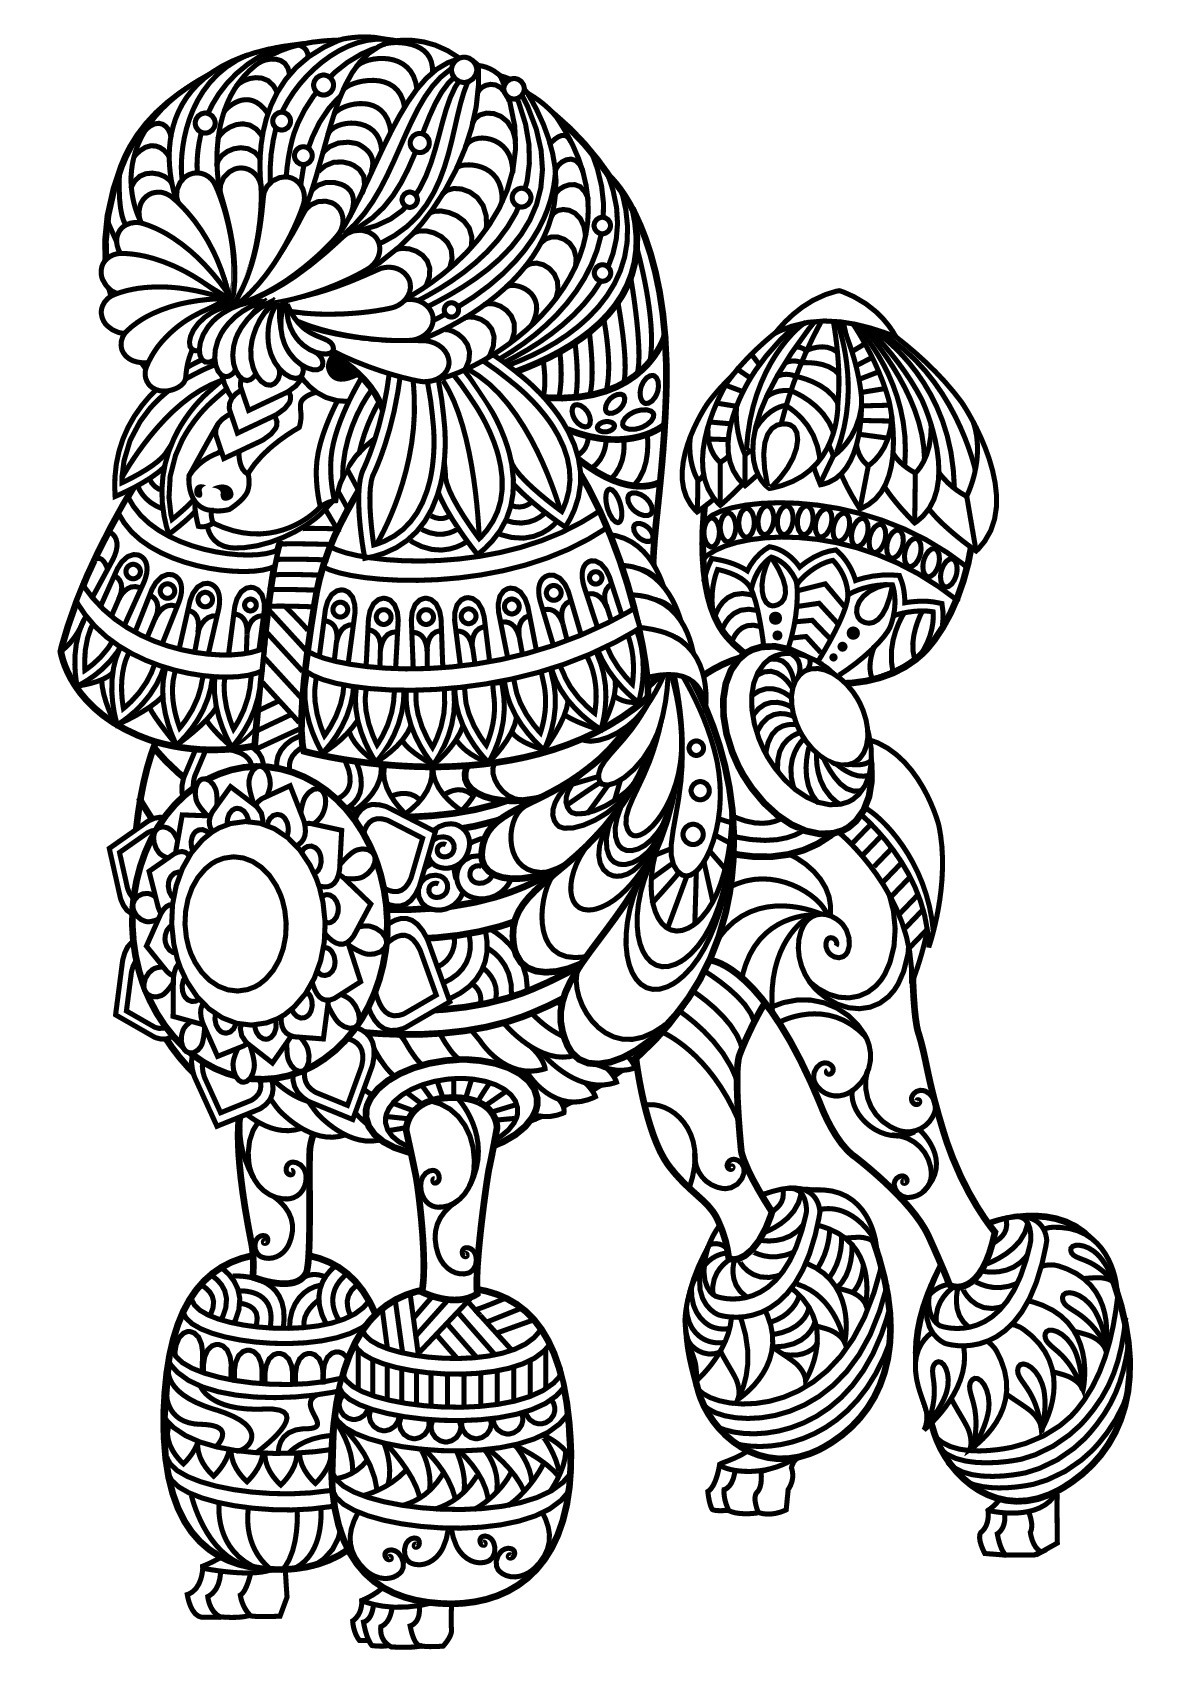 Dog Coloring Books For Adults  Free book dog poodle Dogs Adult Coloring Pages